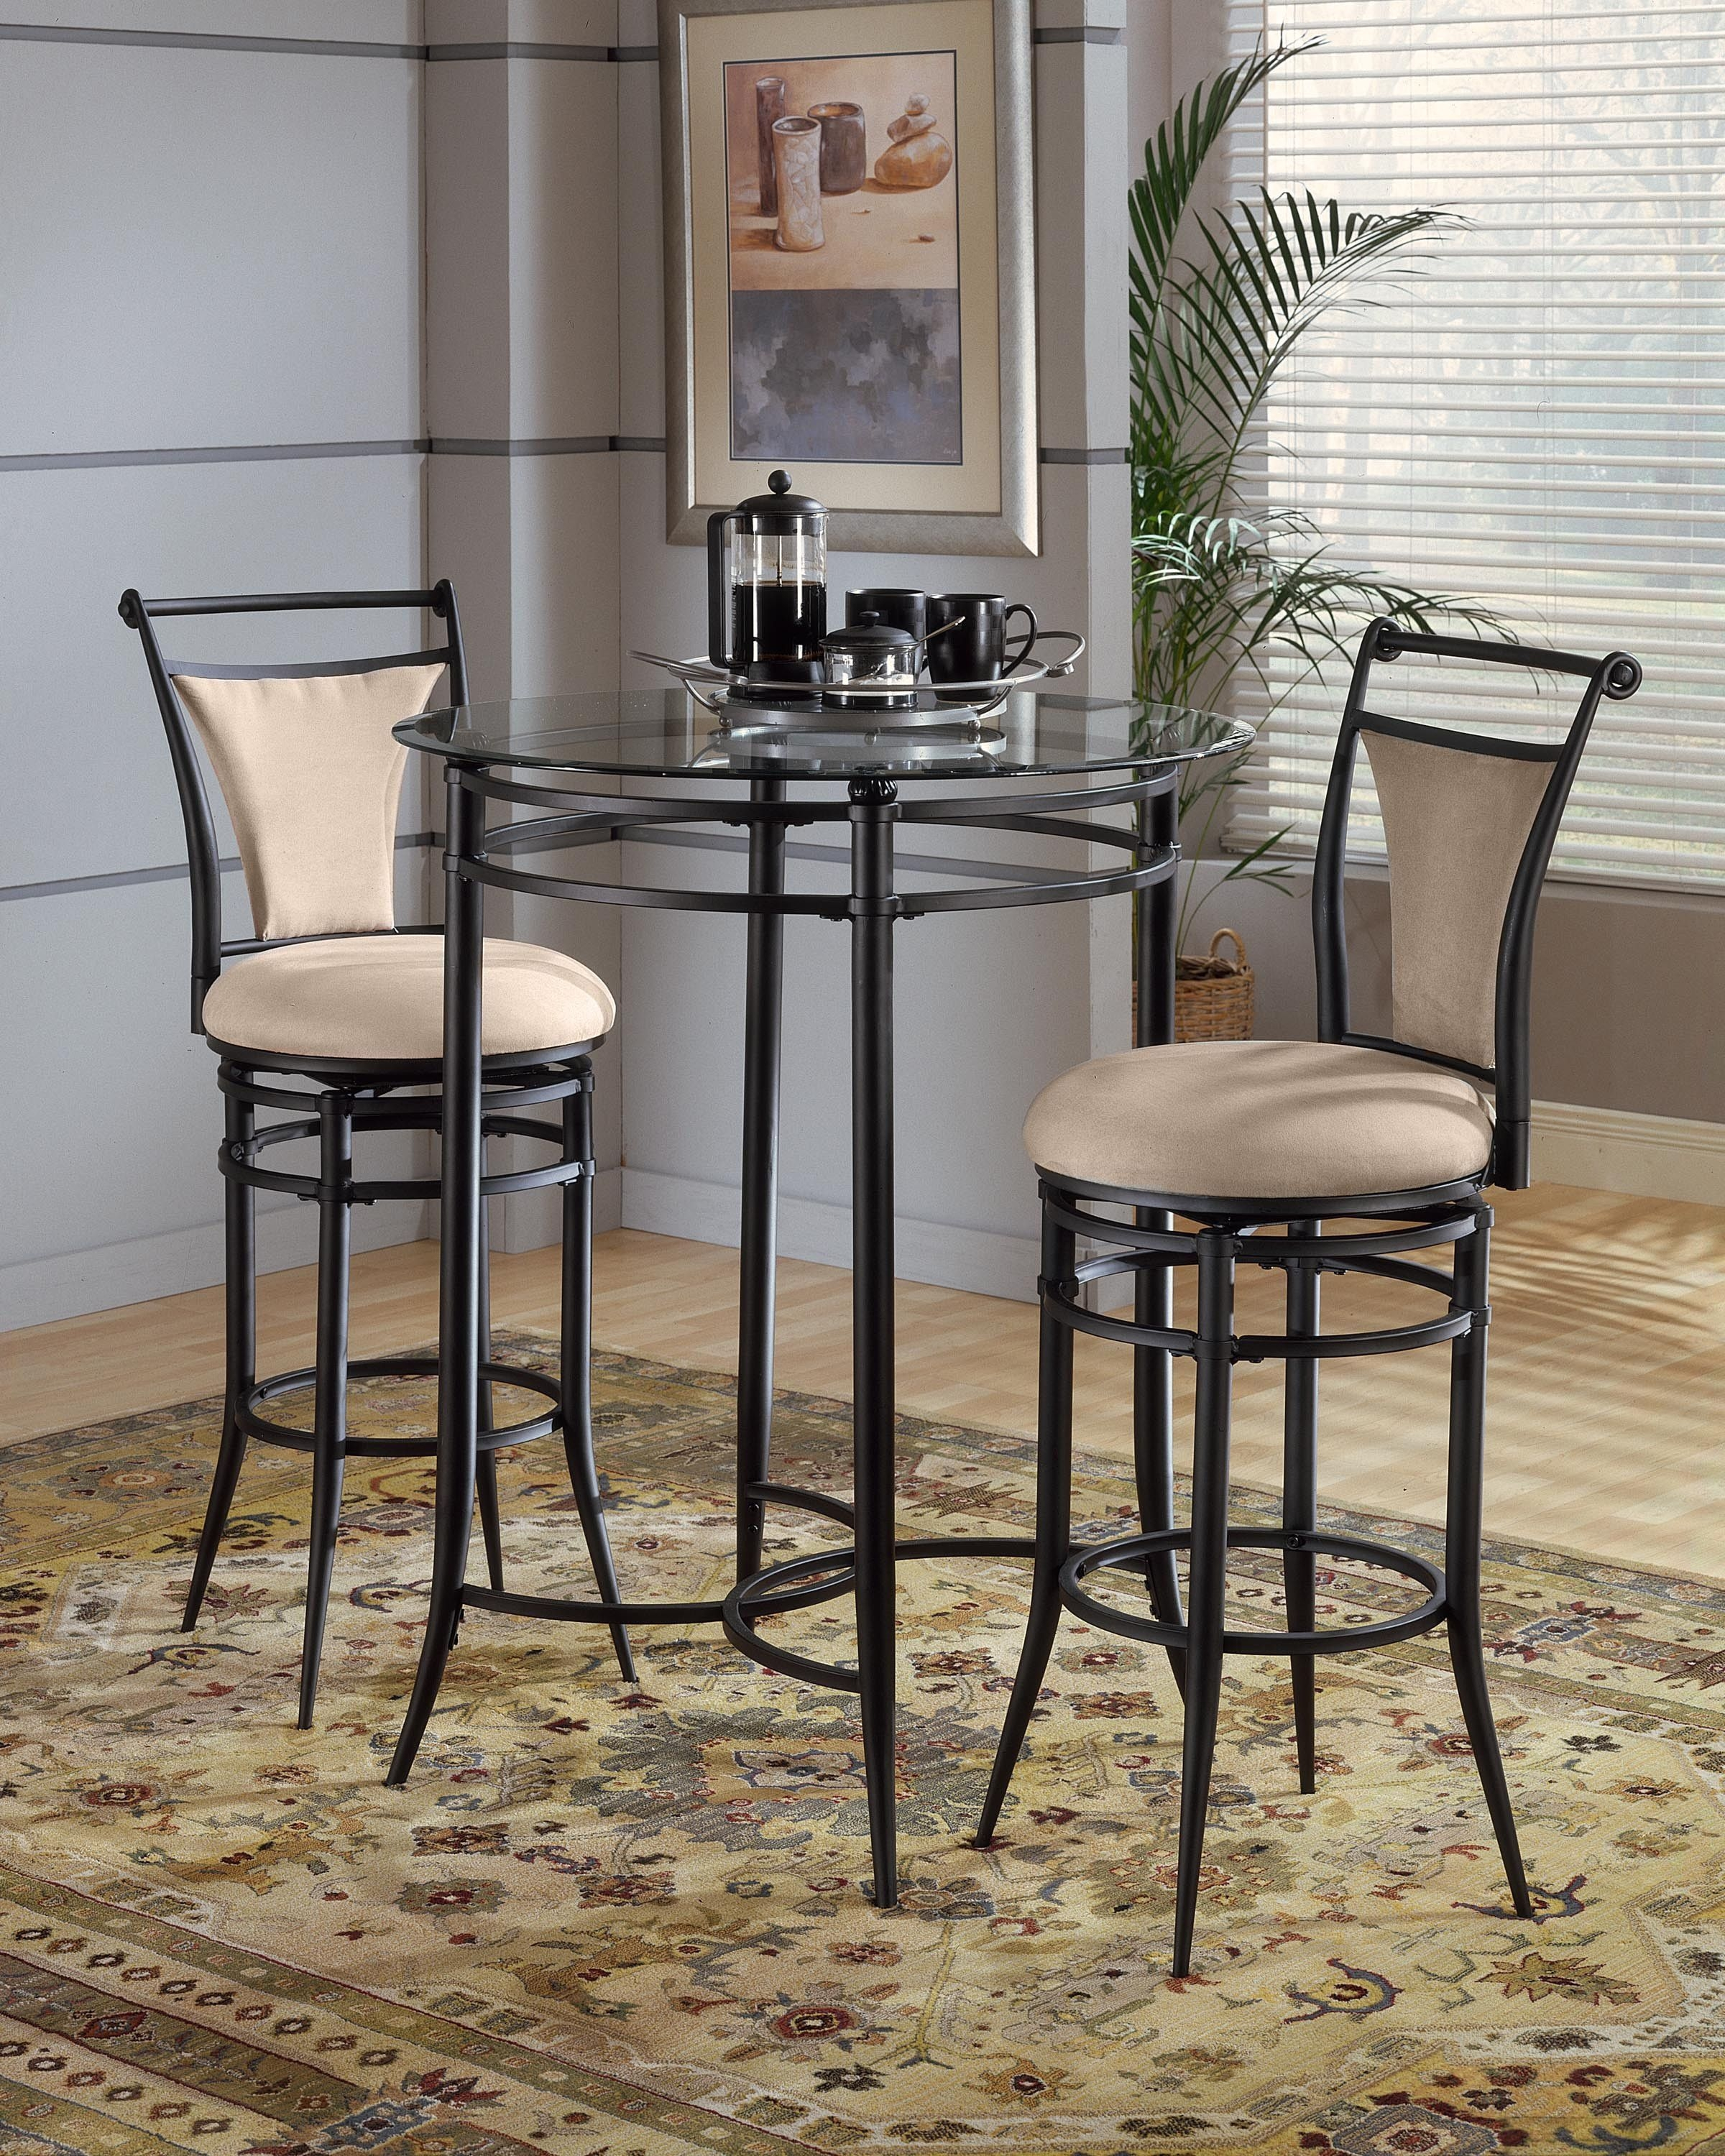 patio chairs with footrests white wood table tall bistro and - foter